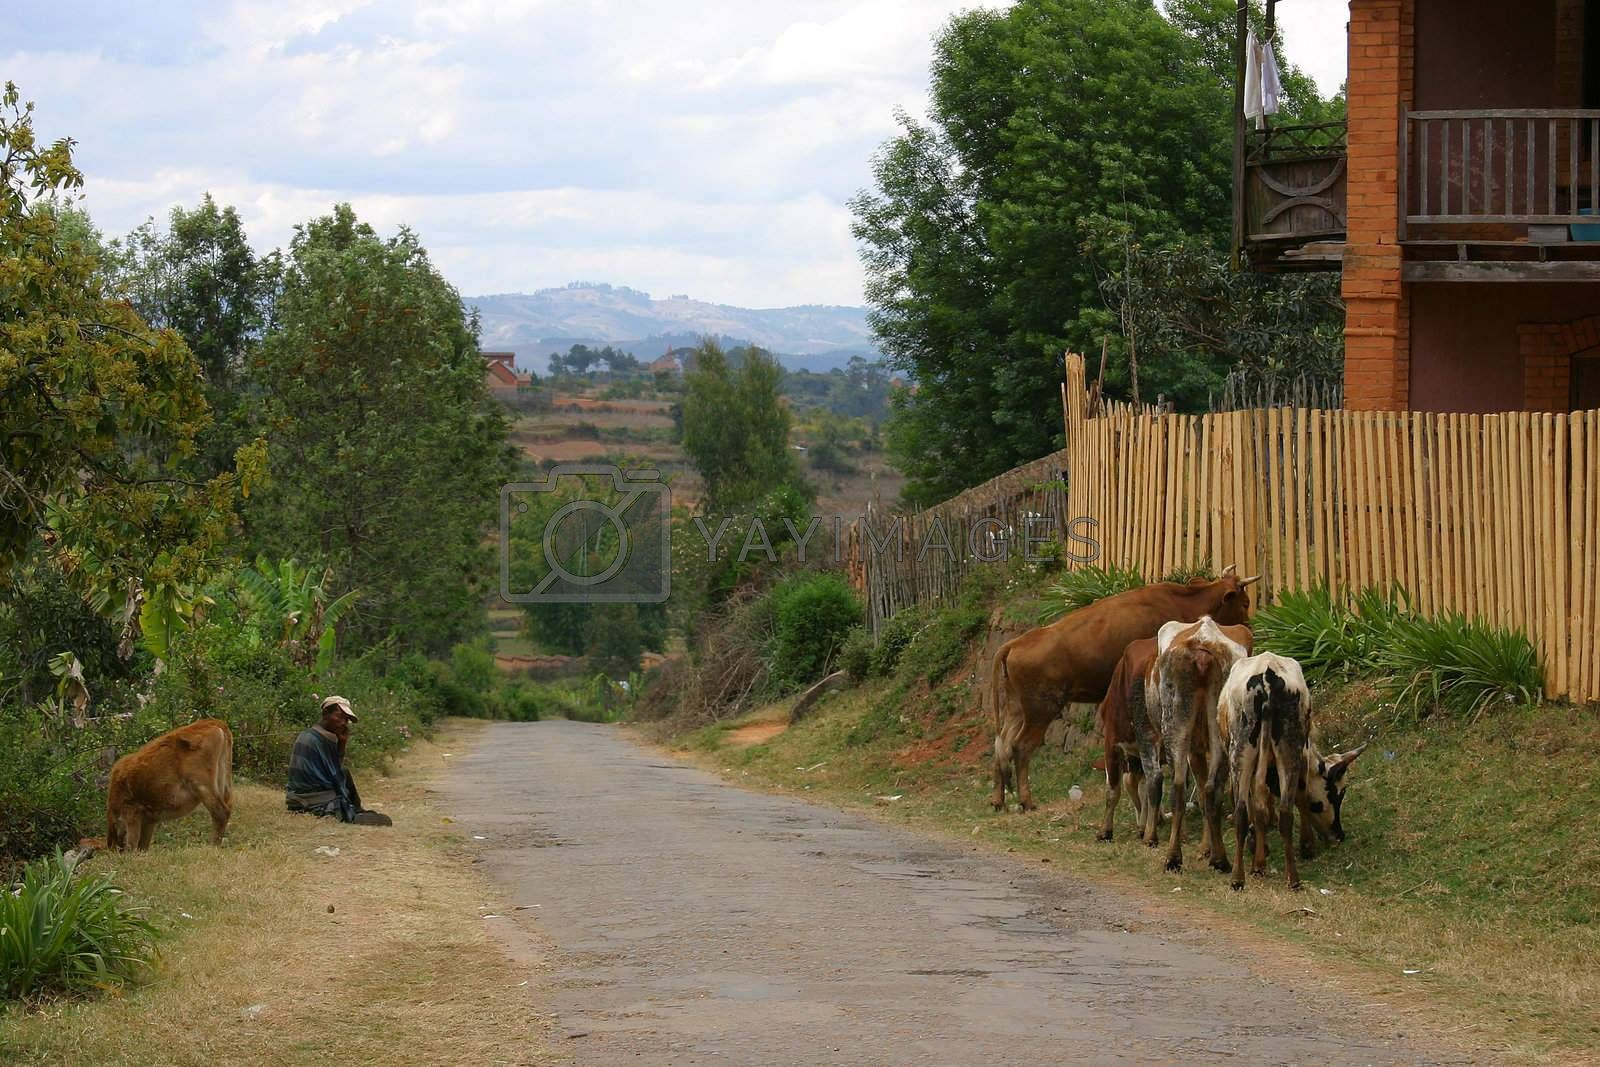 Along the road in Madagascar a man 'walks' his cows